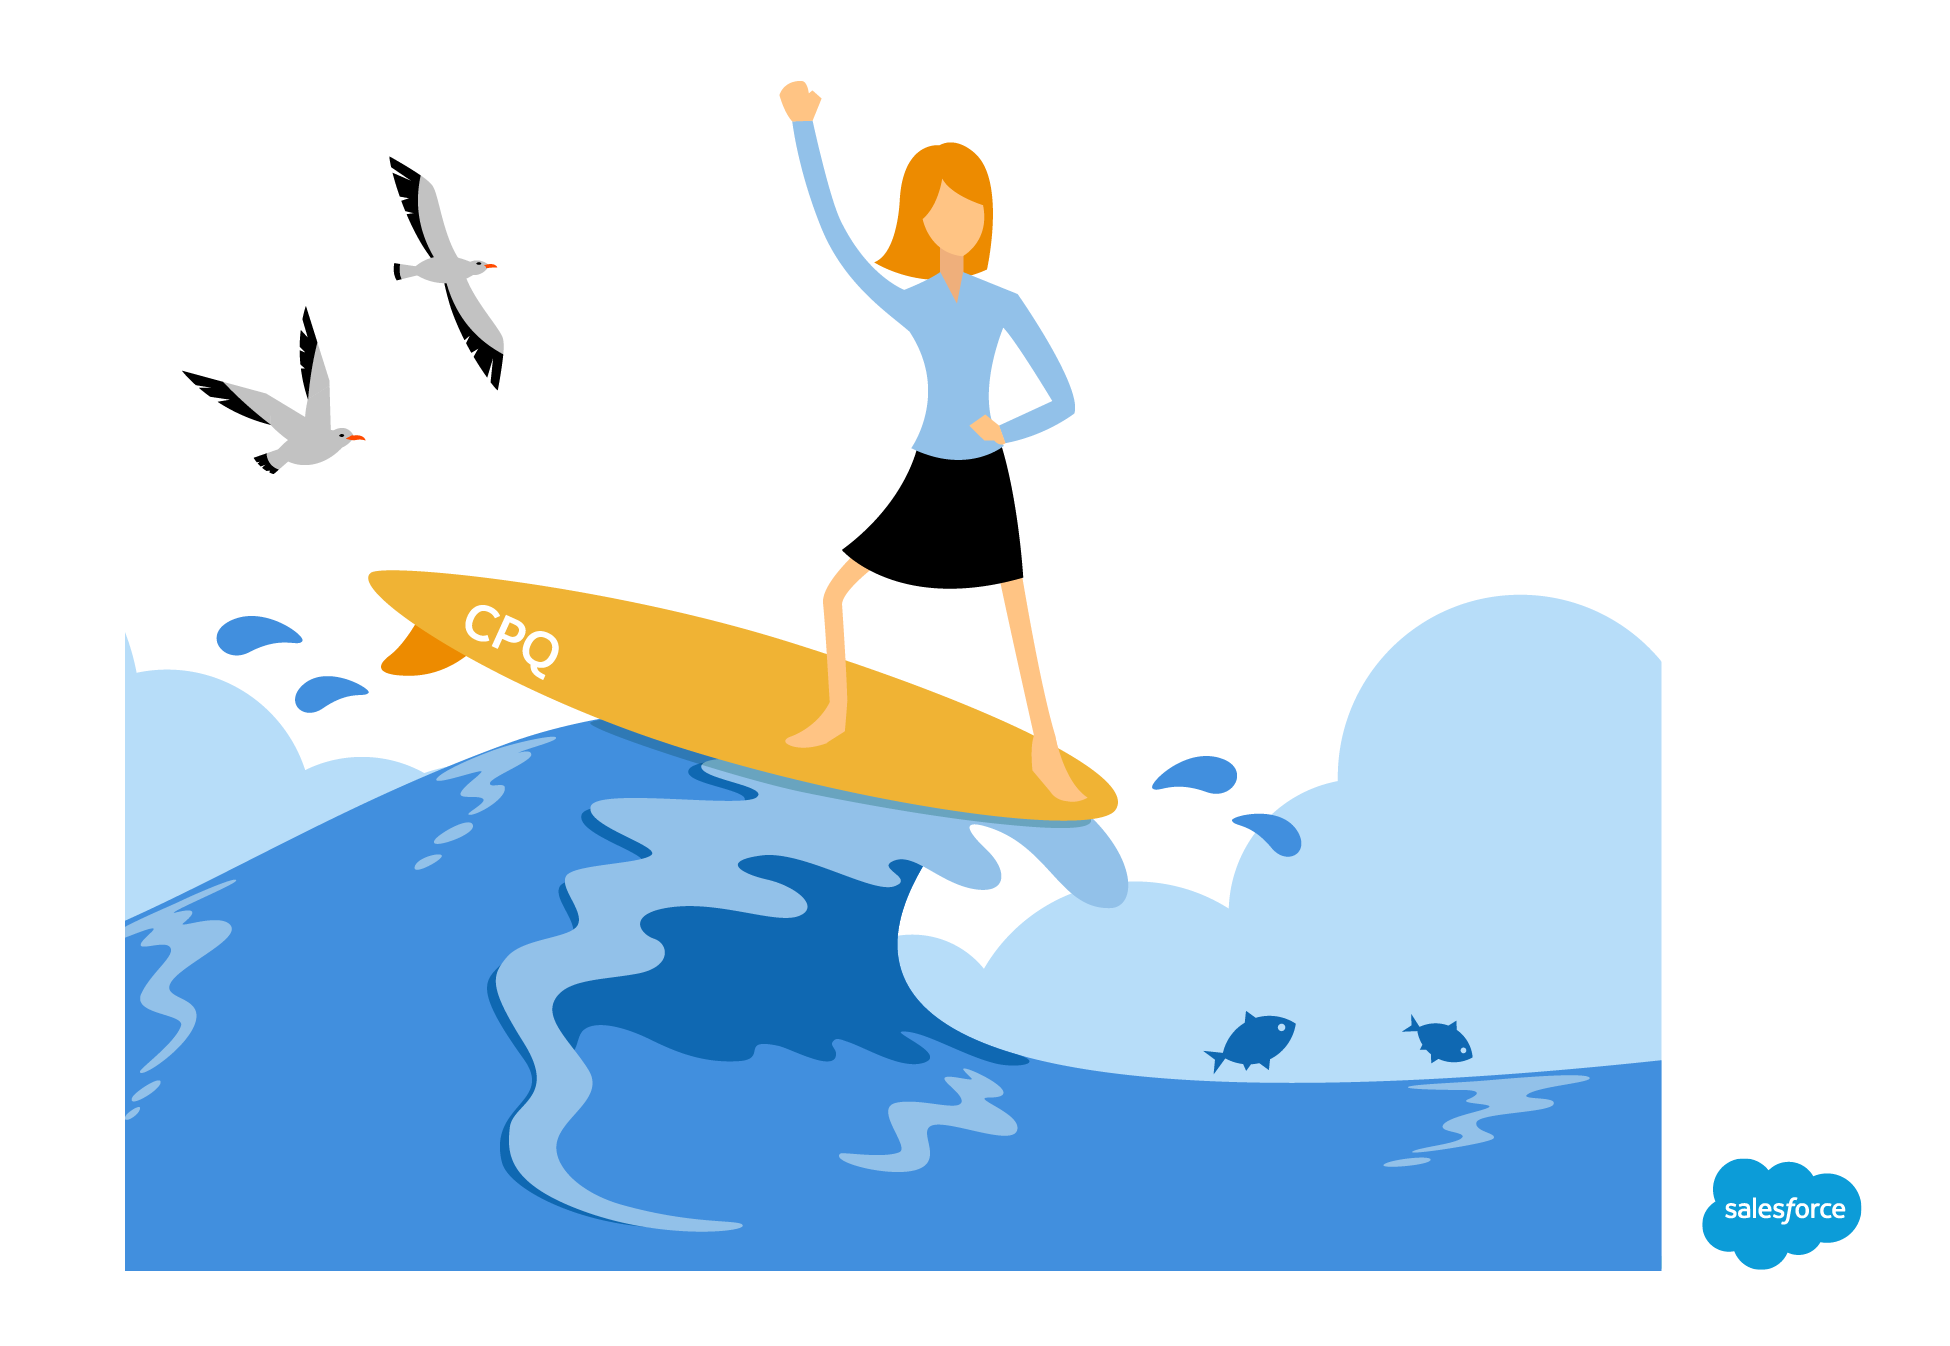 Ride the sales pipeline wave using CPQ